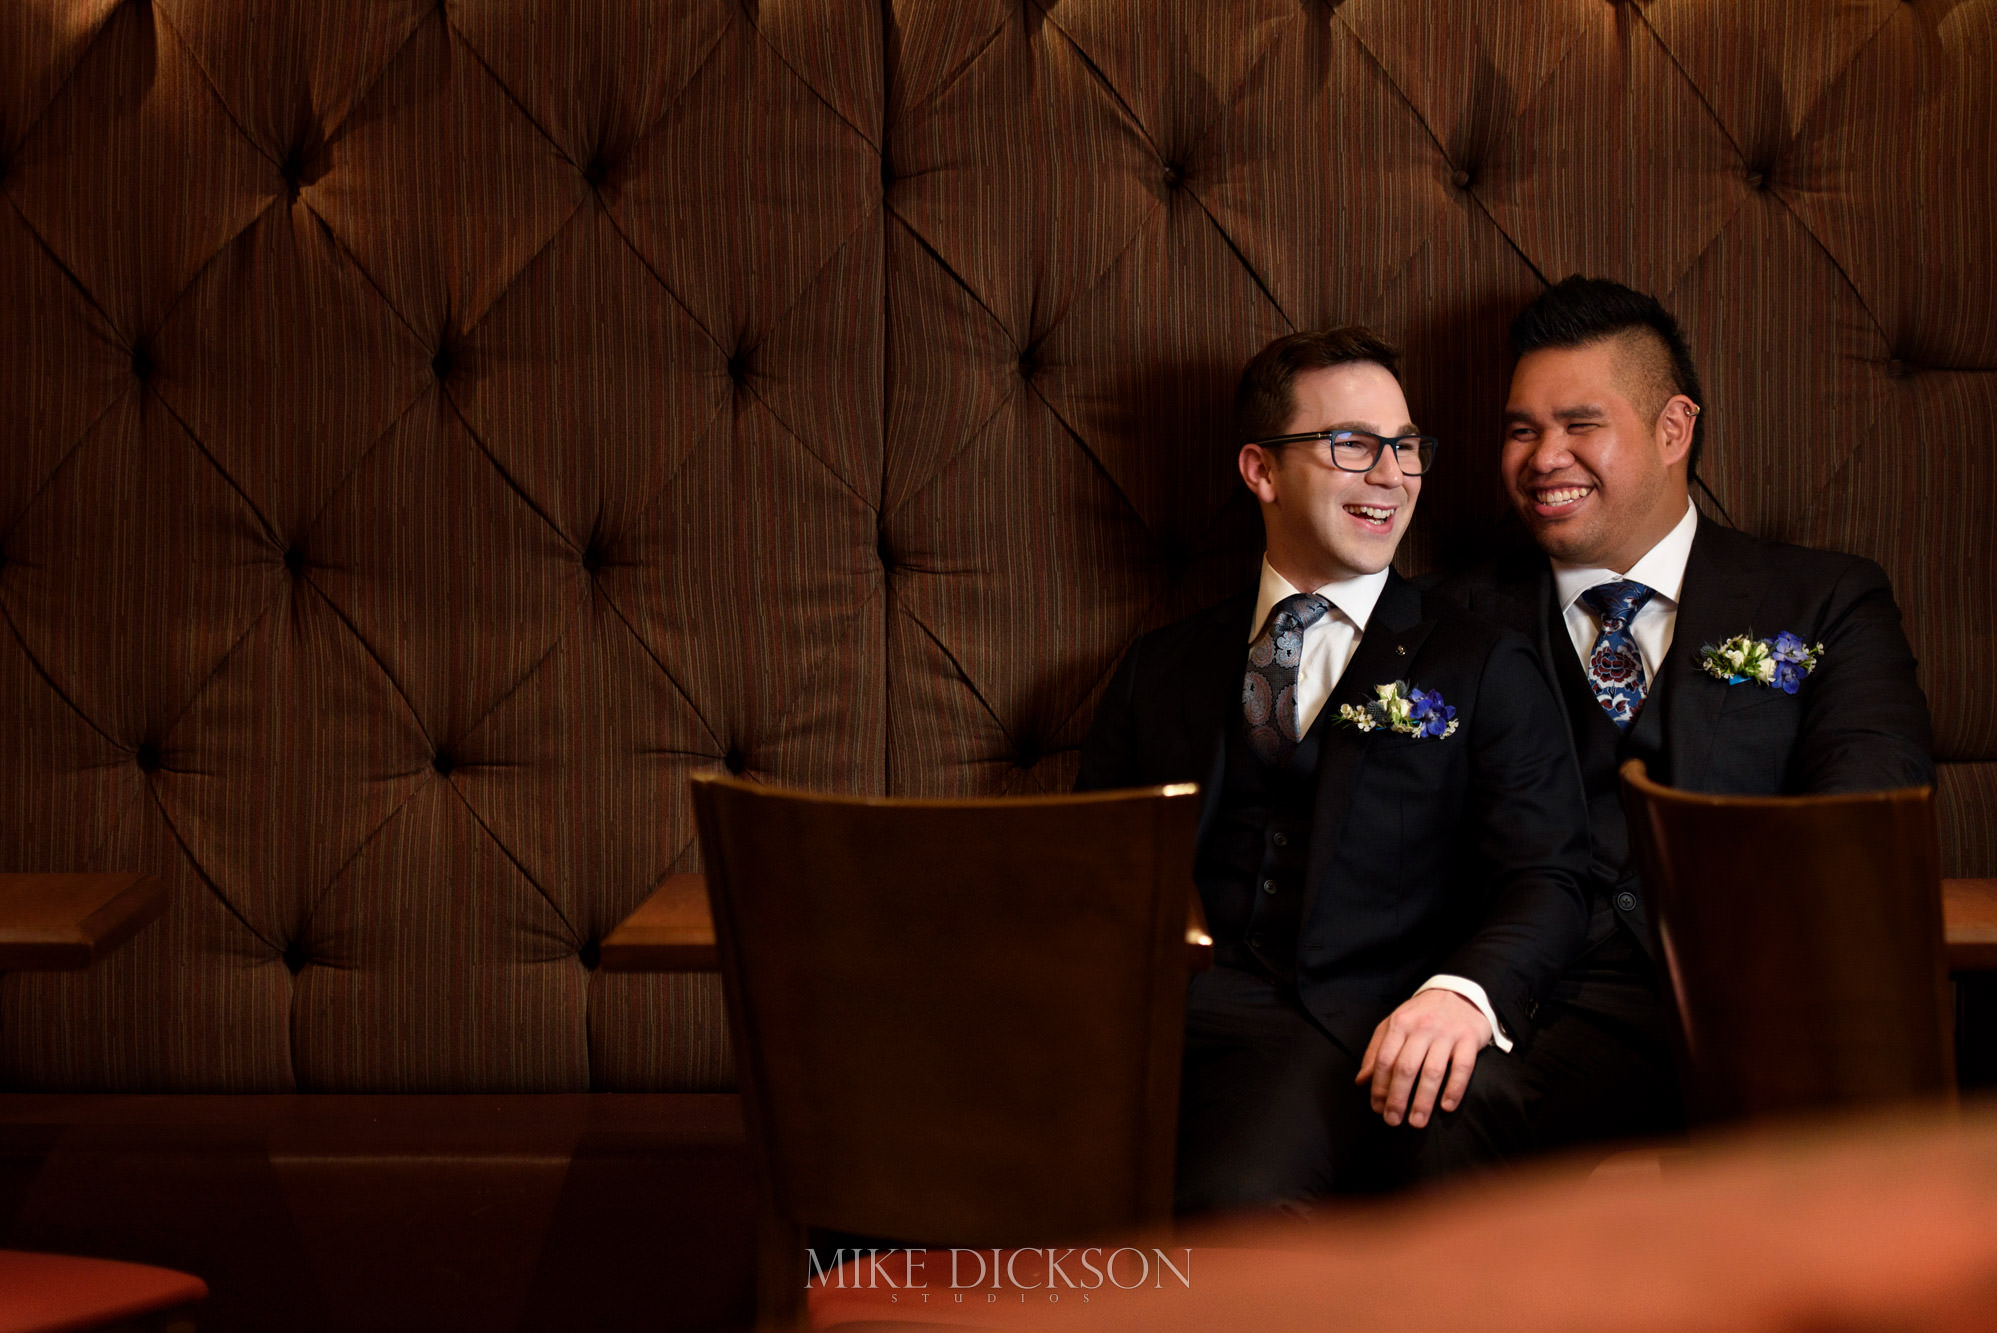 dennis-dan-022-lord-elgin-hotel-ottawa-wedding-photographer-mike-dickson-131o-4055-520